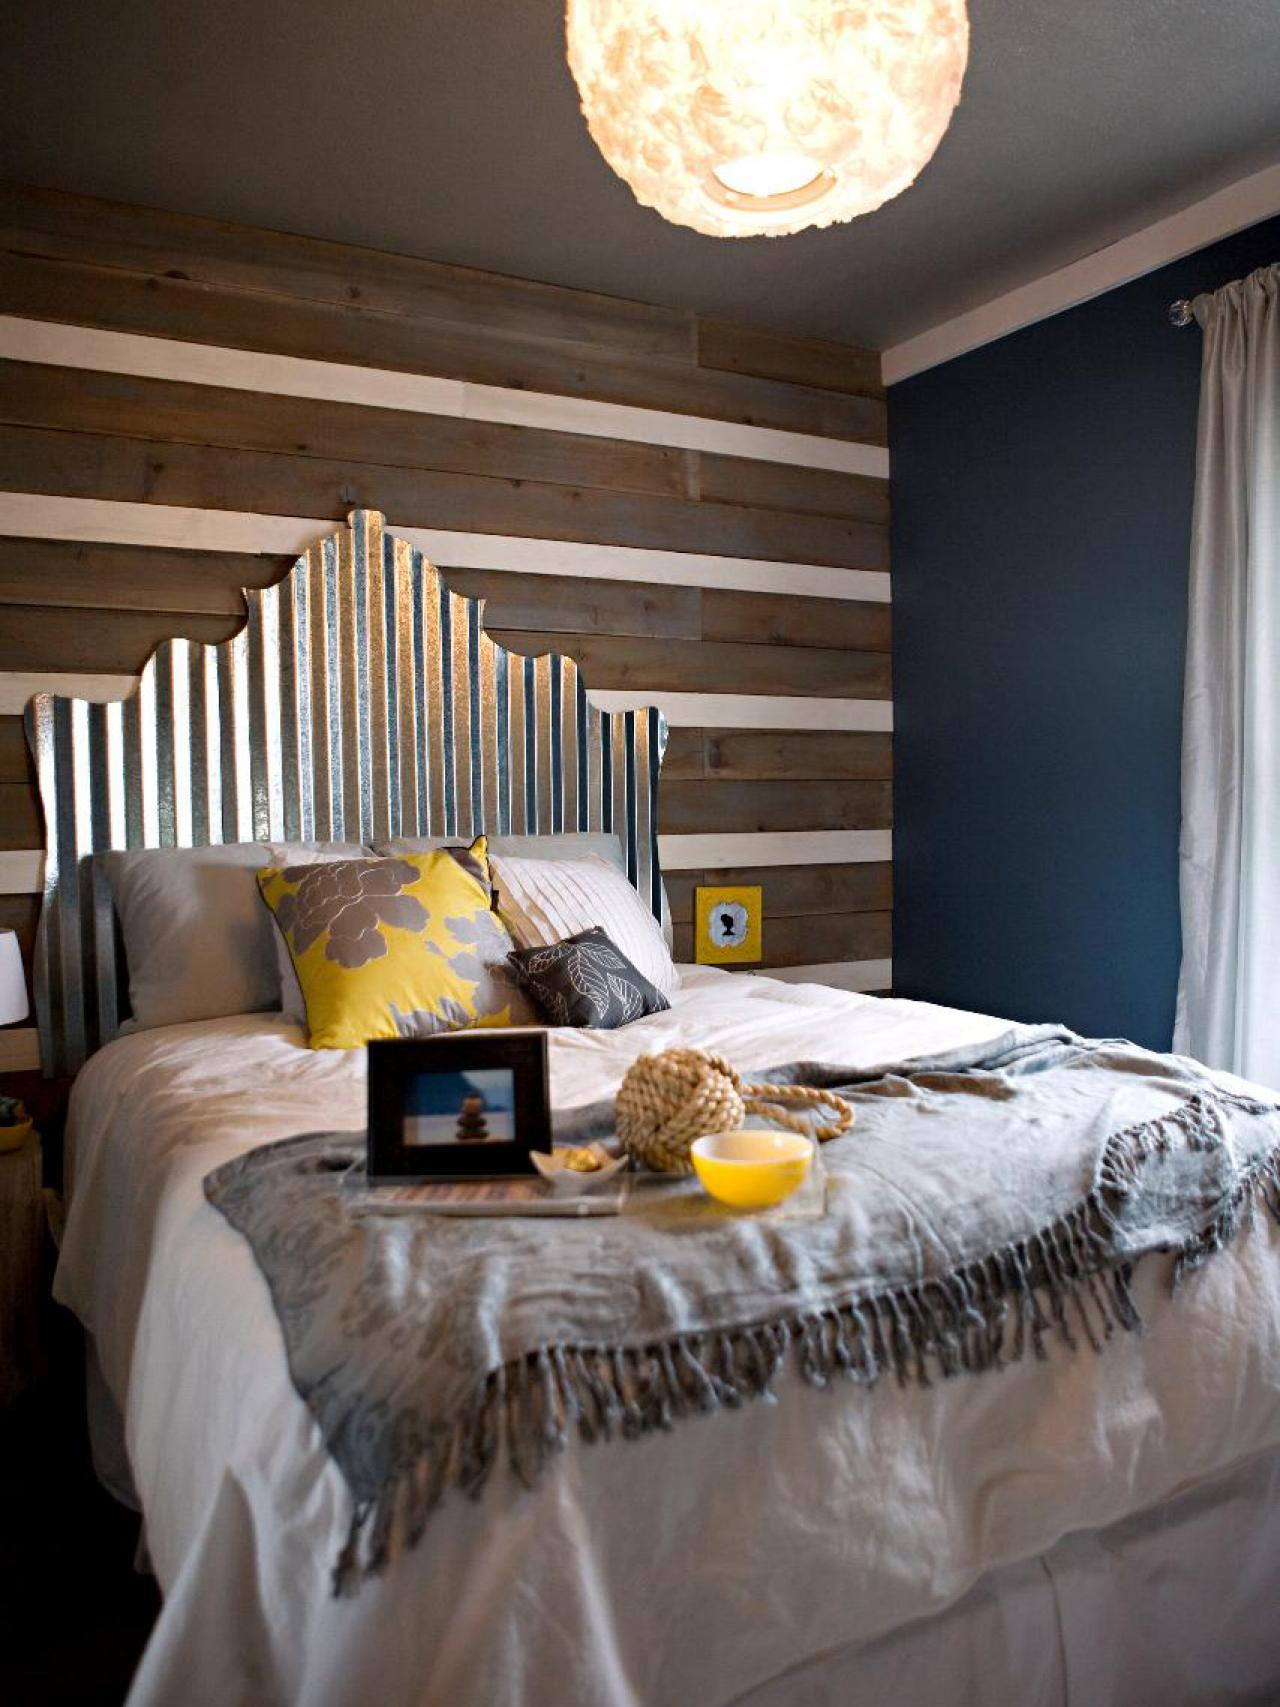 45 Examples Of Original Headboard In Different Styles A Spicy Boy